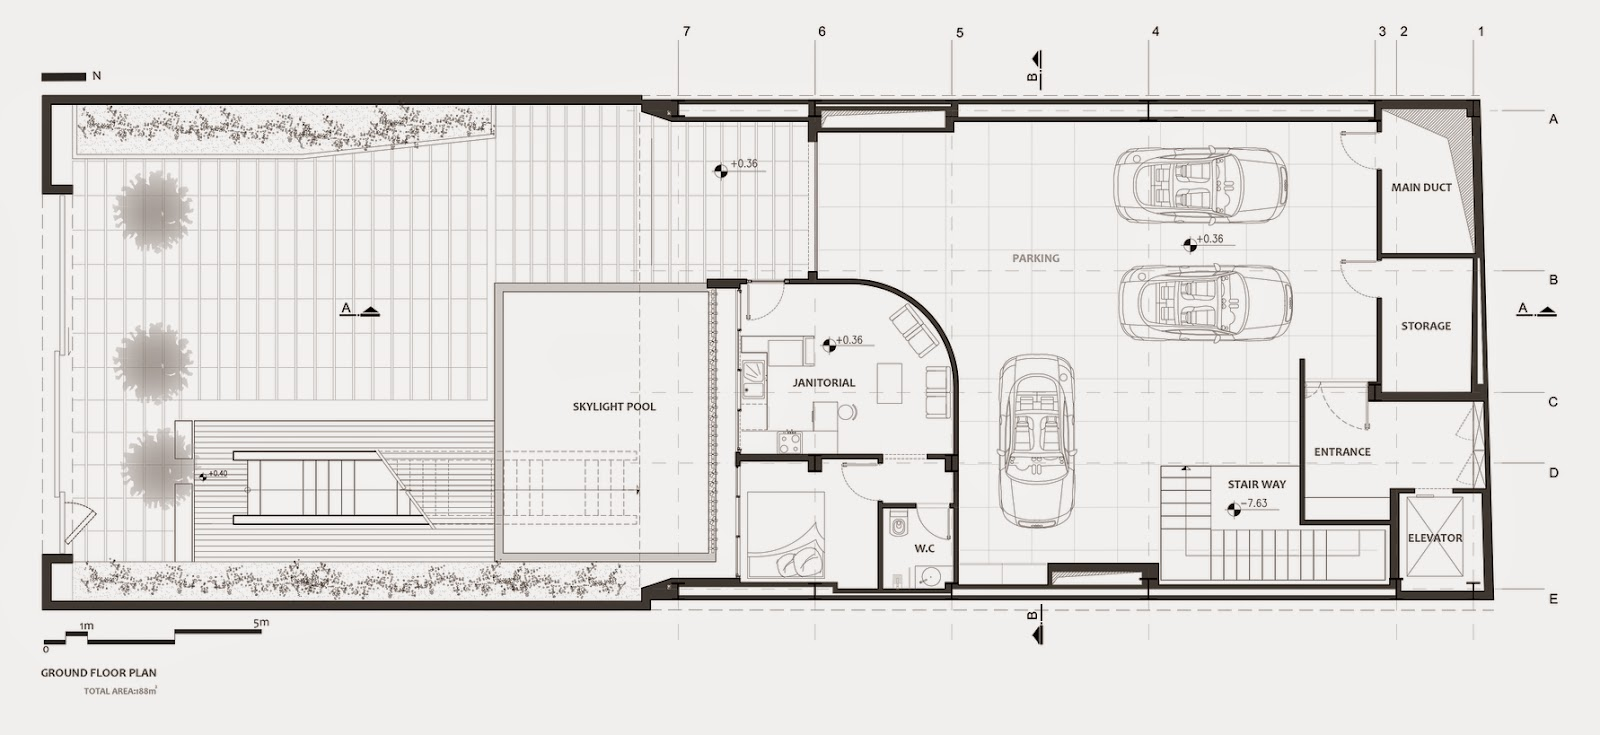 08-Plans-Ground-Floor-Plan-Section-Nextoffice-Sharifi-Ha-House-Revolving-Rooms-Architecture-www-designstack-co